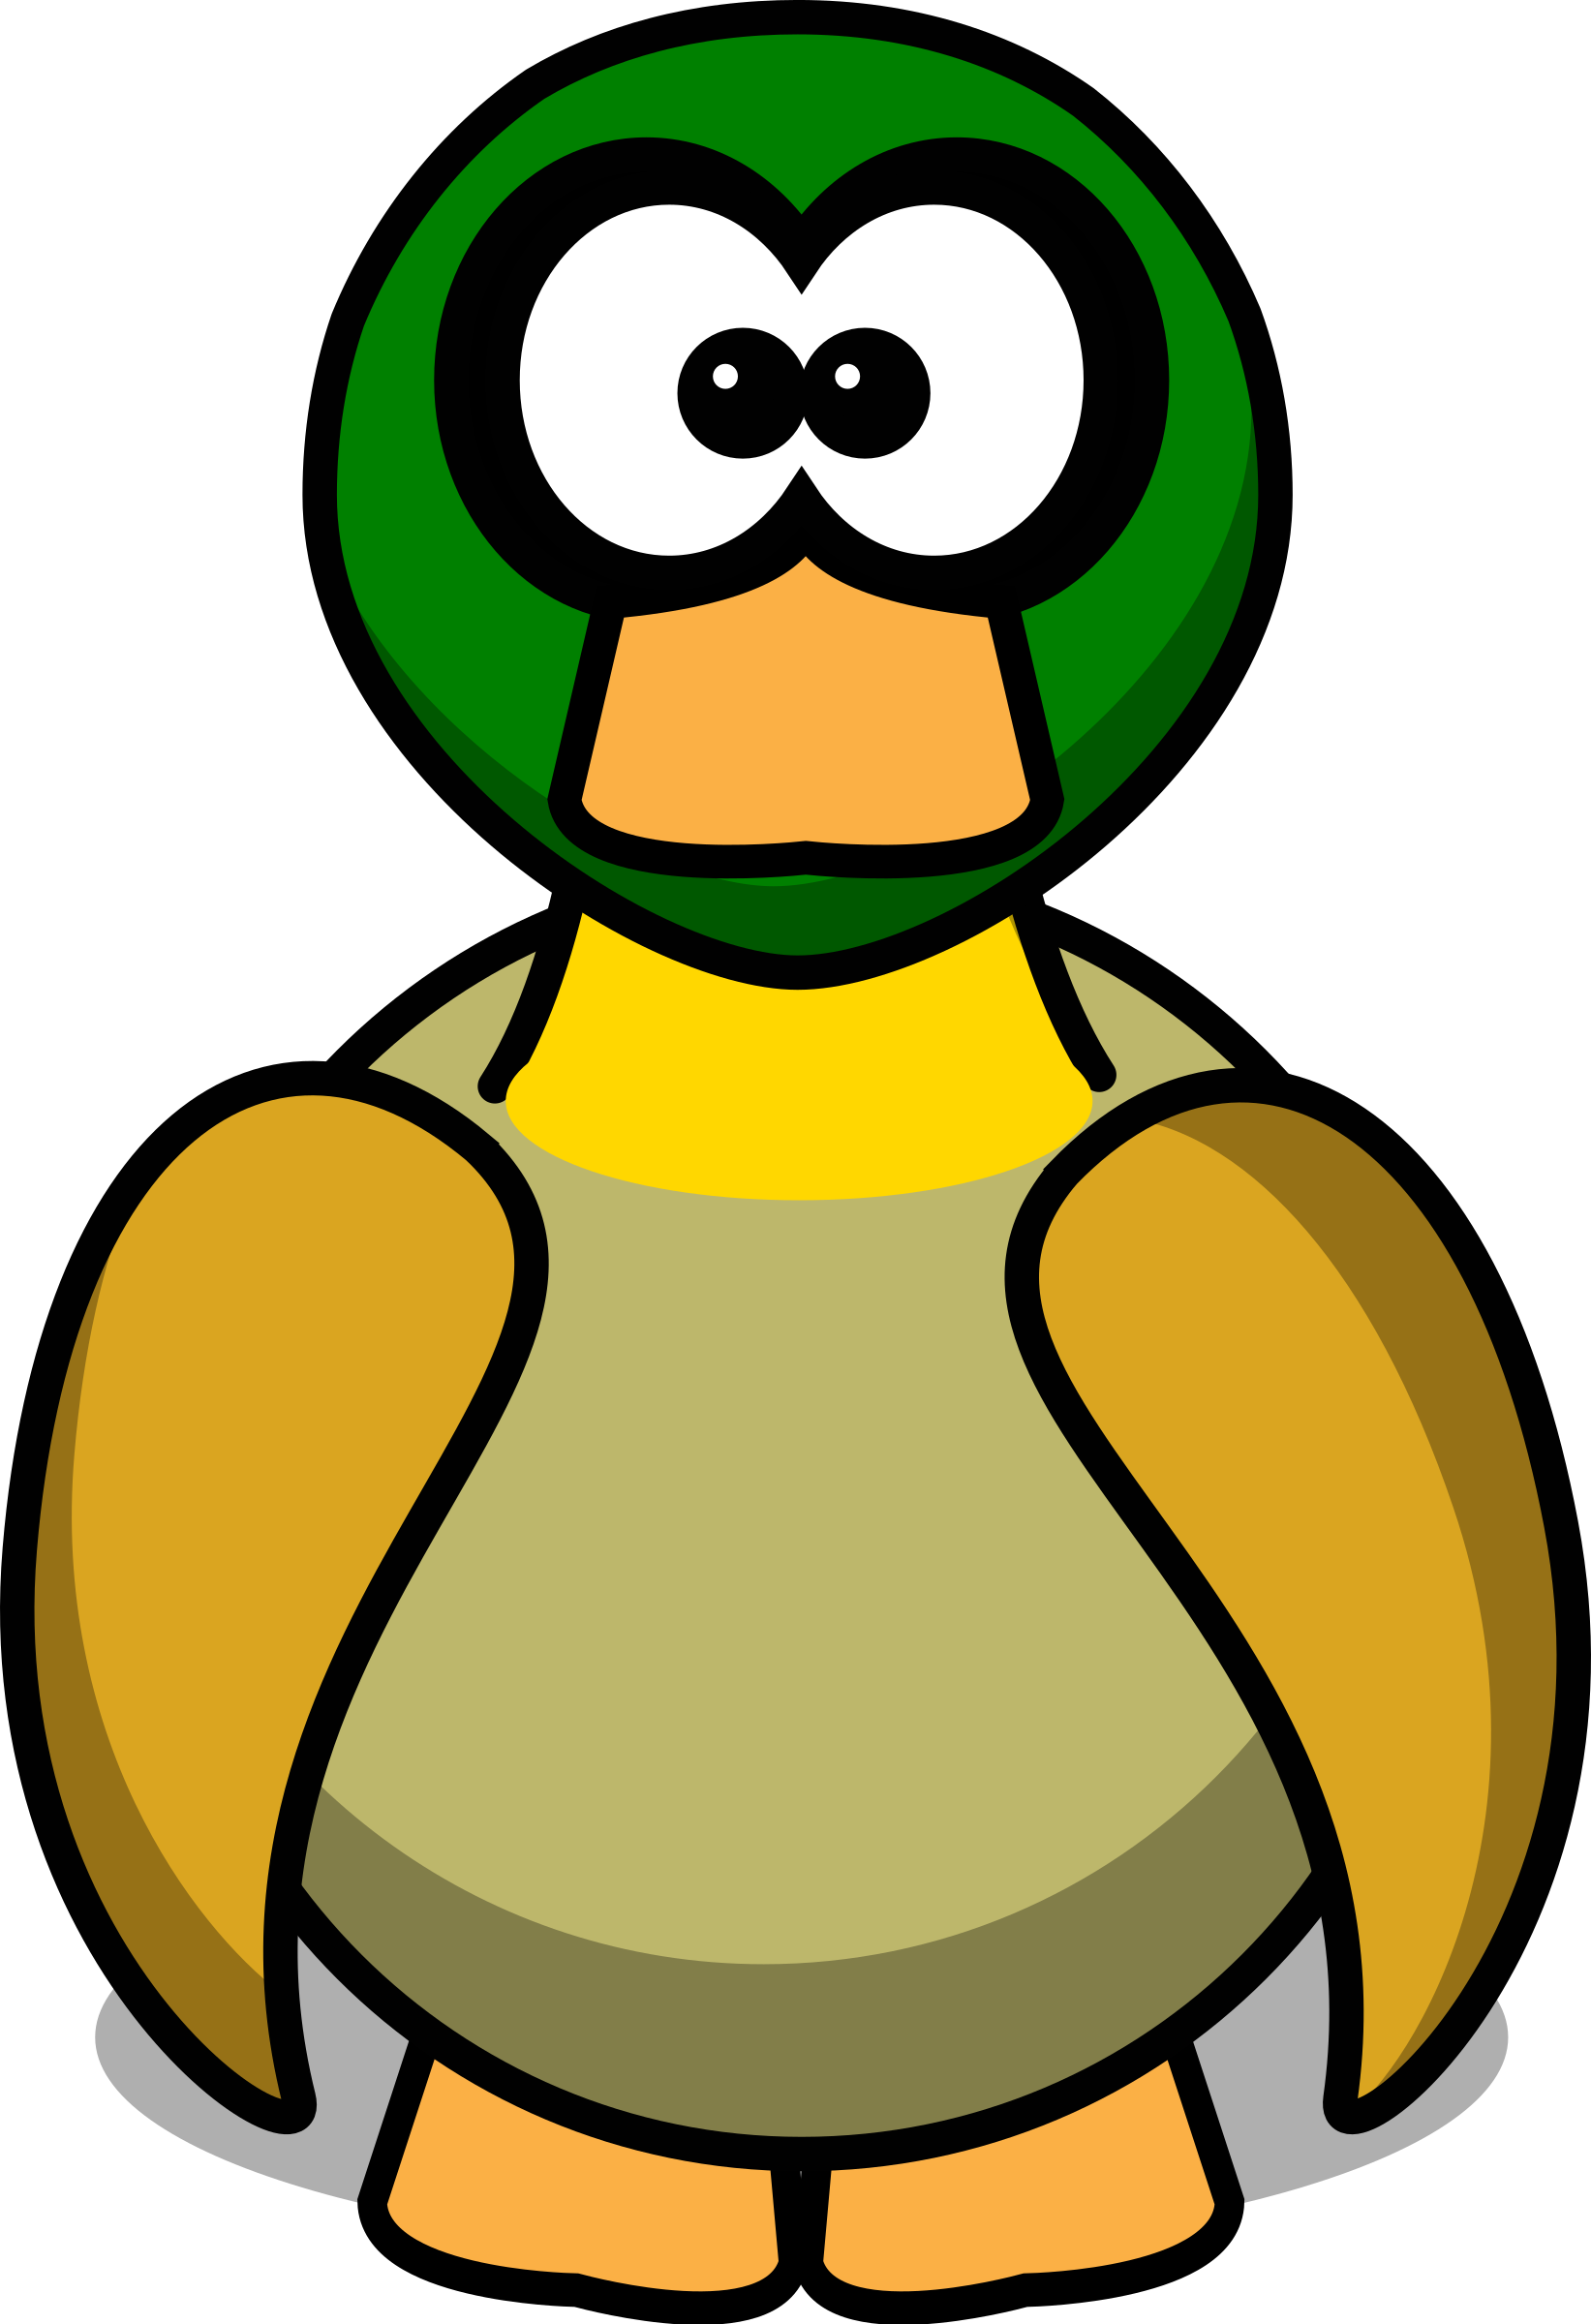 Money character clipart png transparent Clipart - Cartoon Duck png transparent